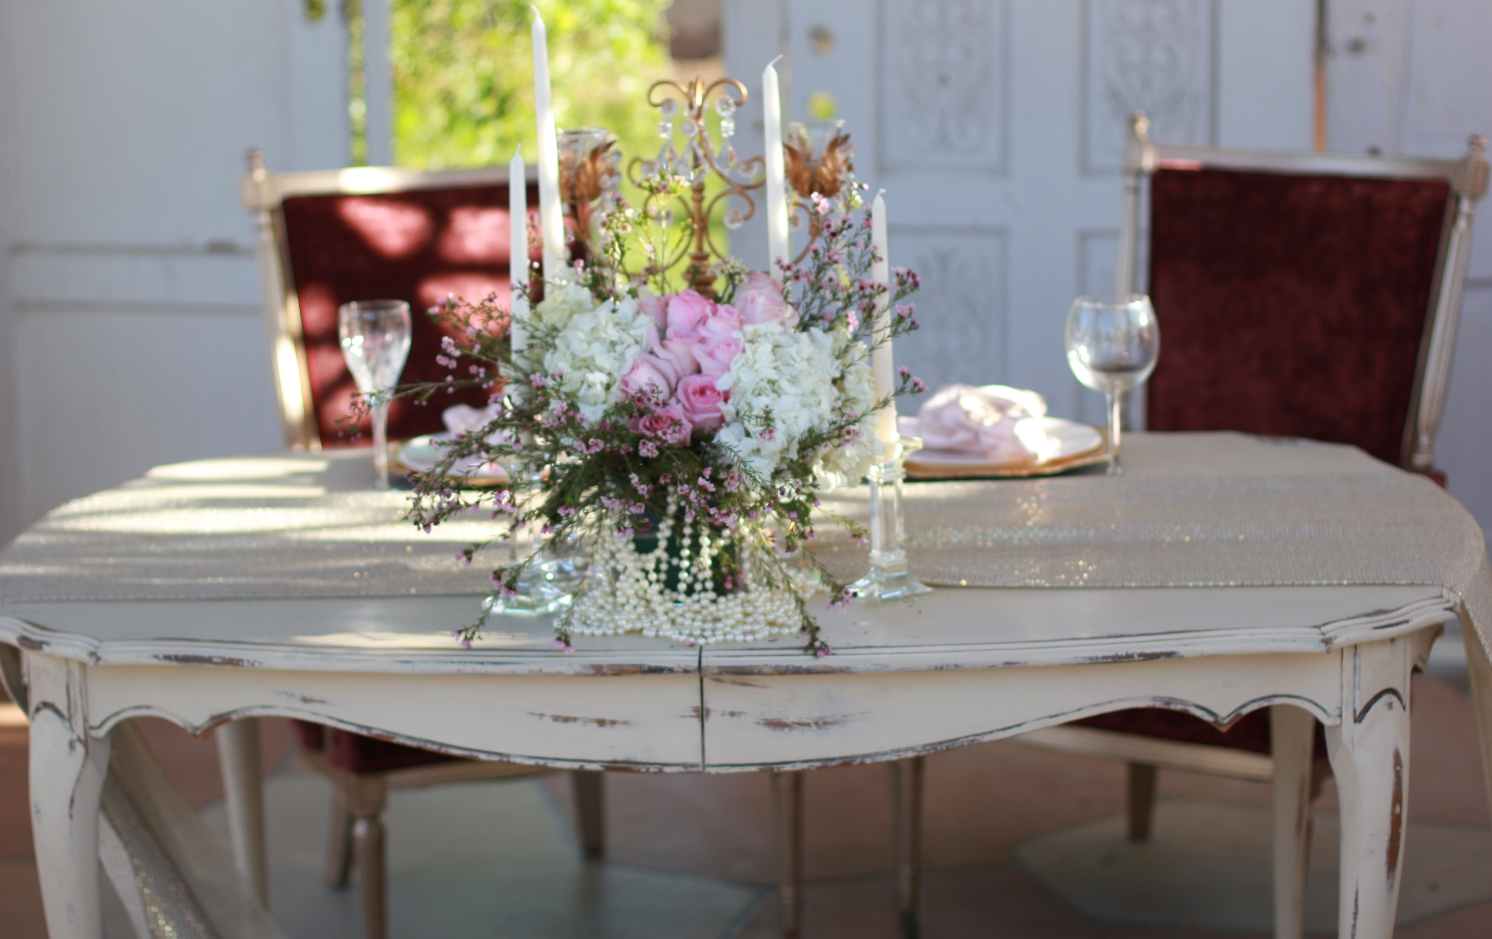 Cesar and Cleo chairs with Vivienne sweetheart table and Prim centerpiece design